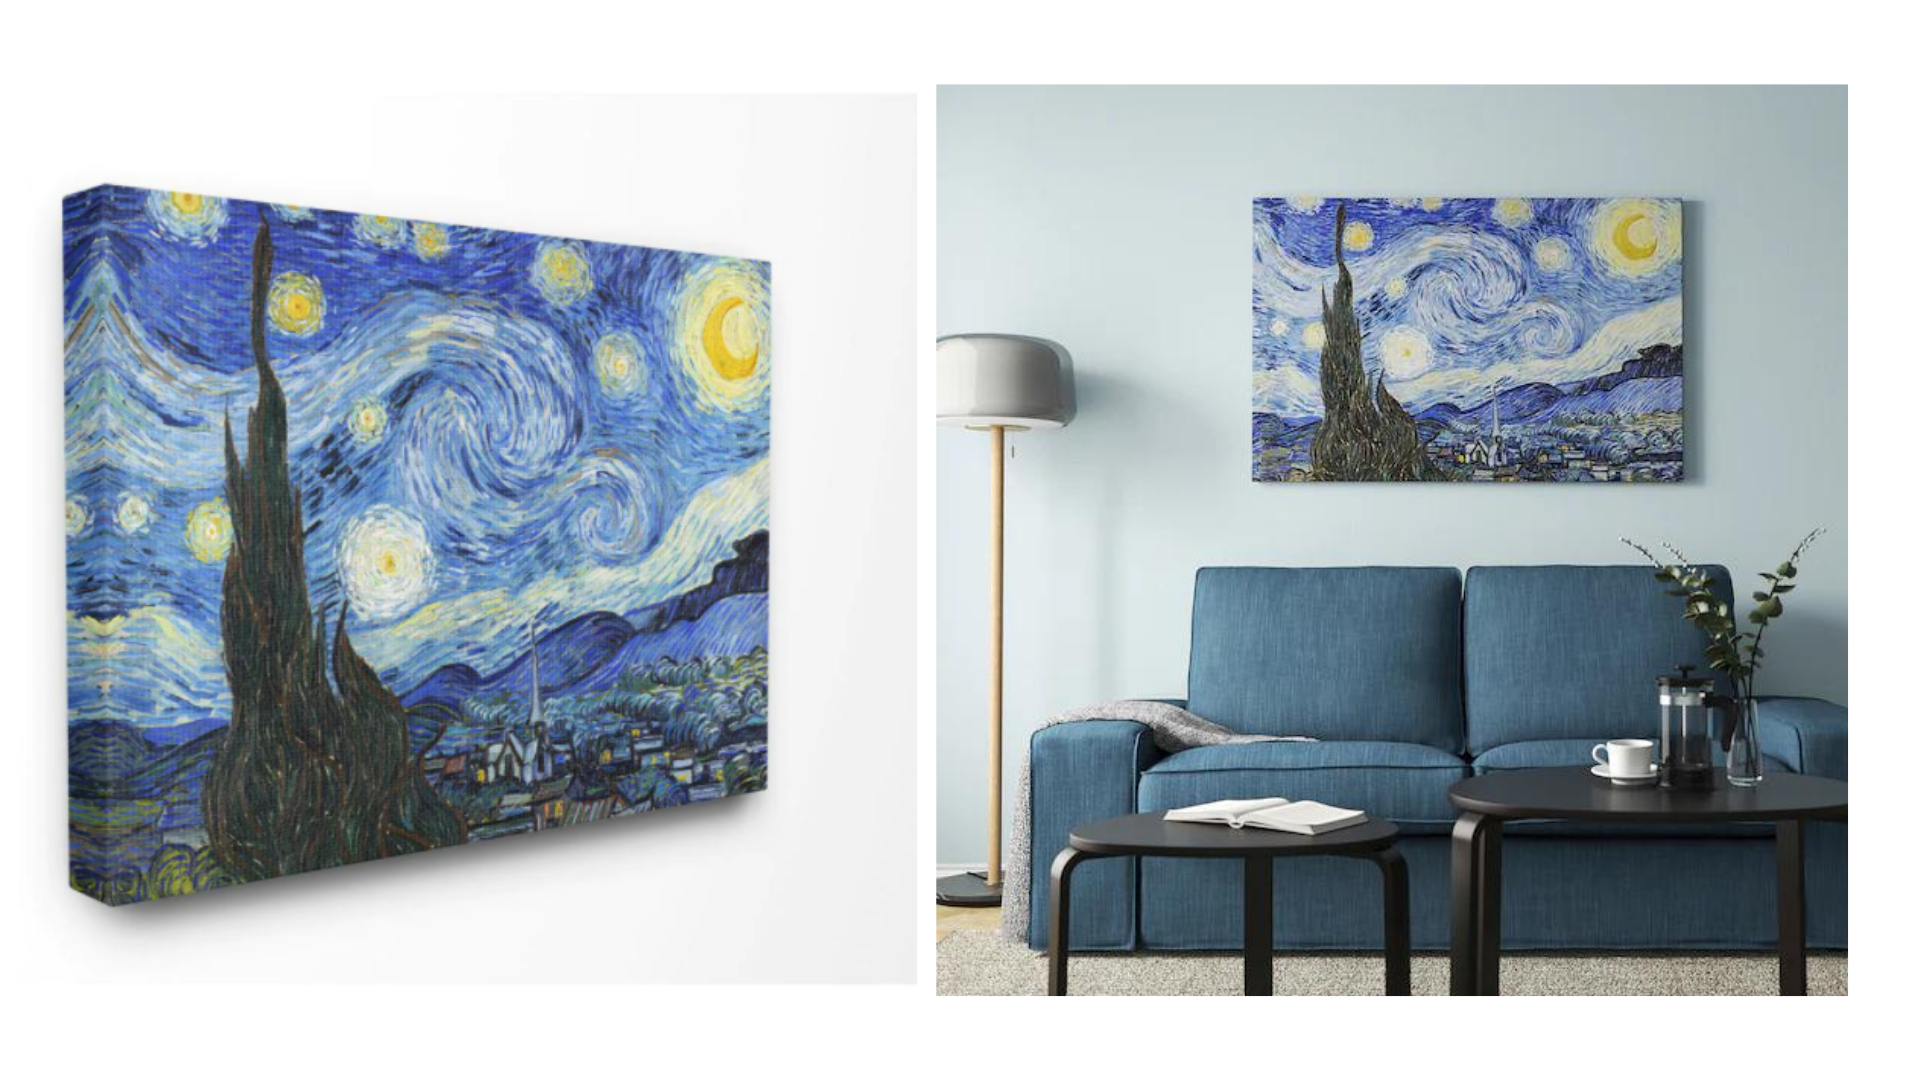 starry night product matching deep learning